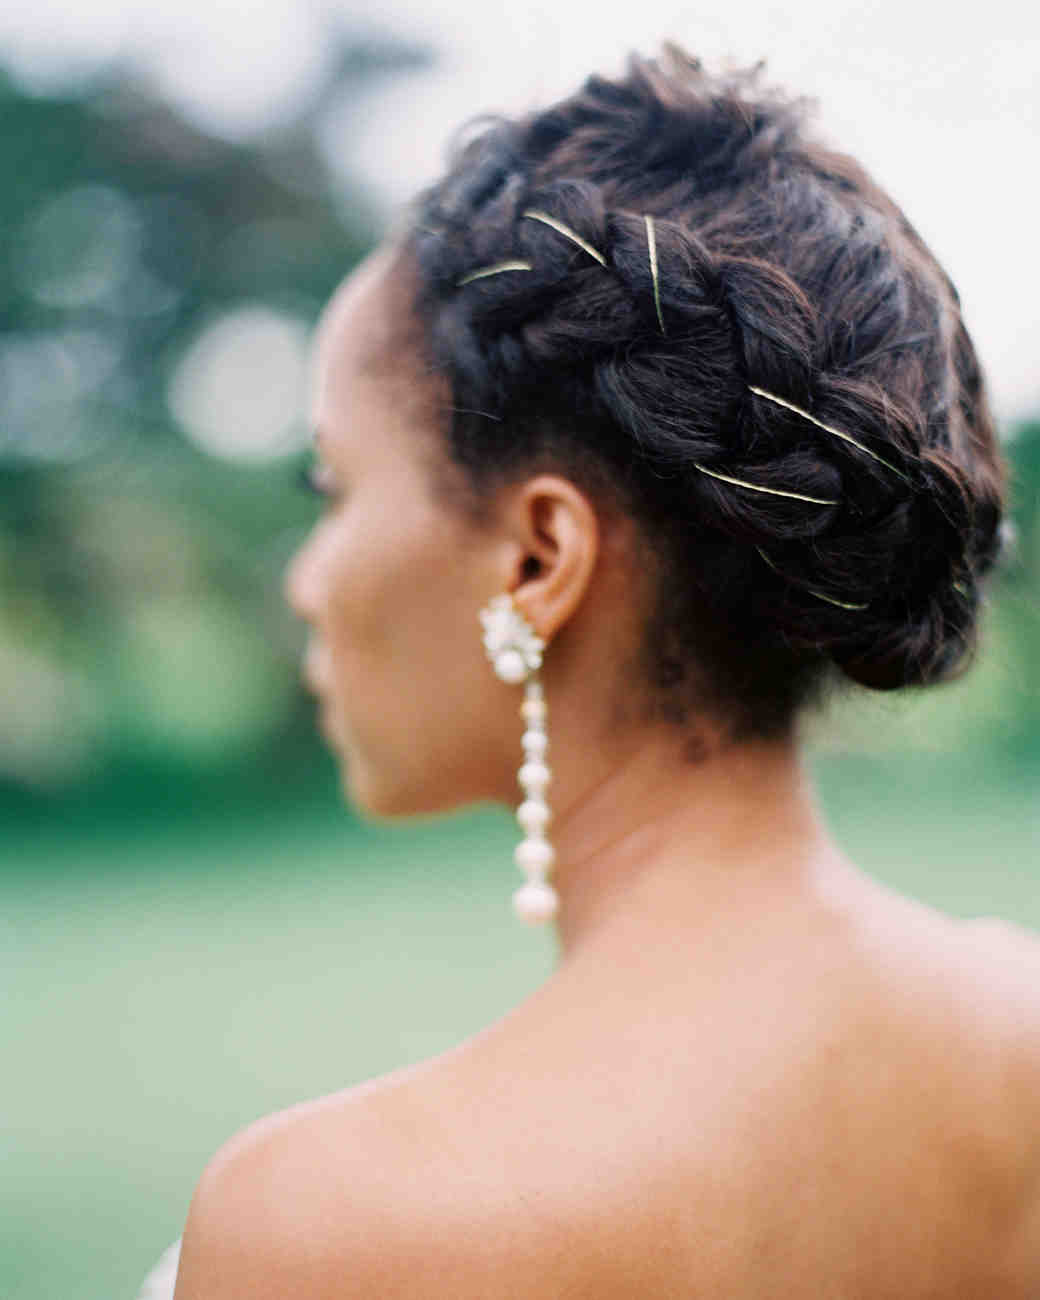 Wedding New Hair Style: 25 Braided Wedding Hairstyles We Love